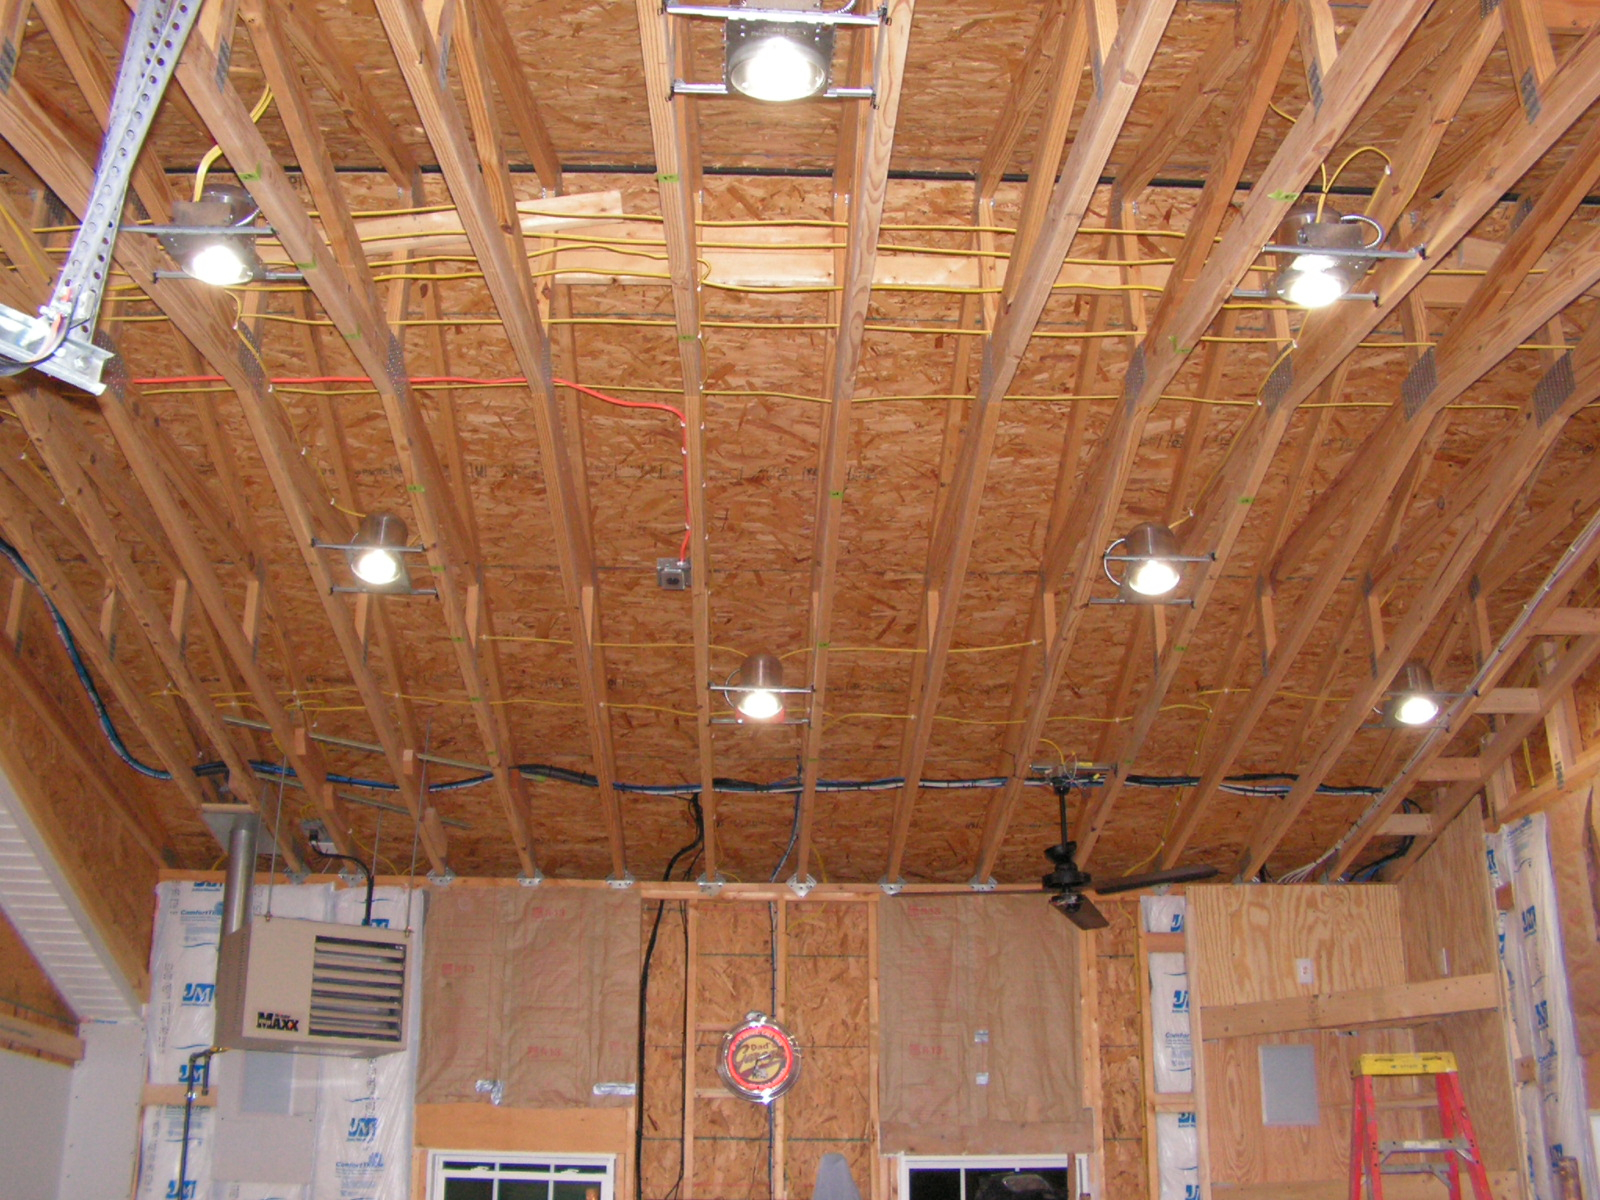 Insulating With Soffitridge Vent The Garage Journal Board intended for dimensions 1600 X 1200